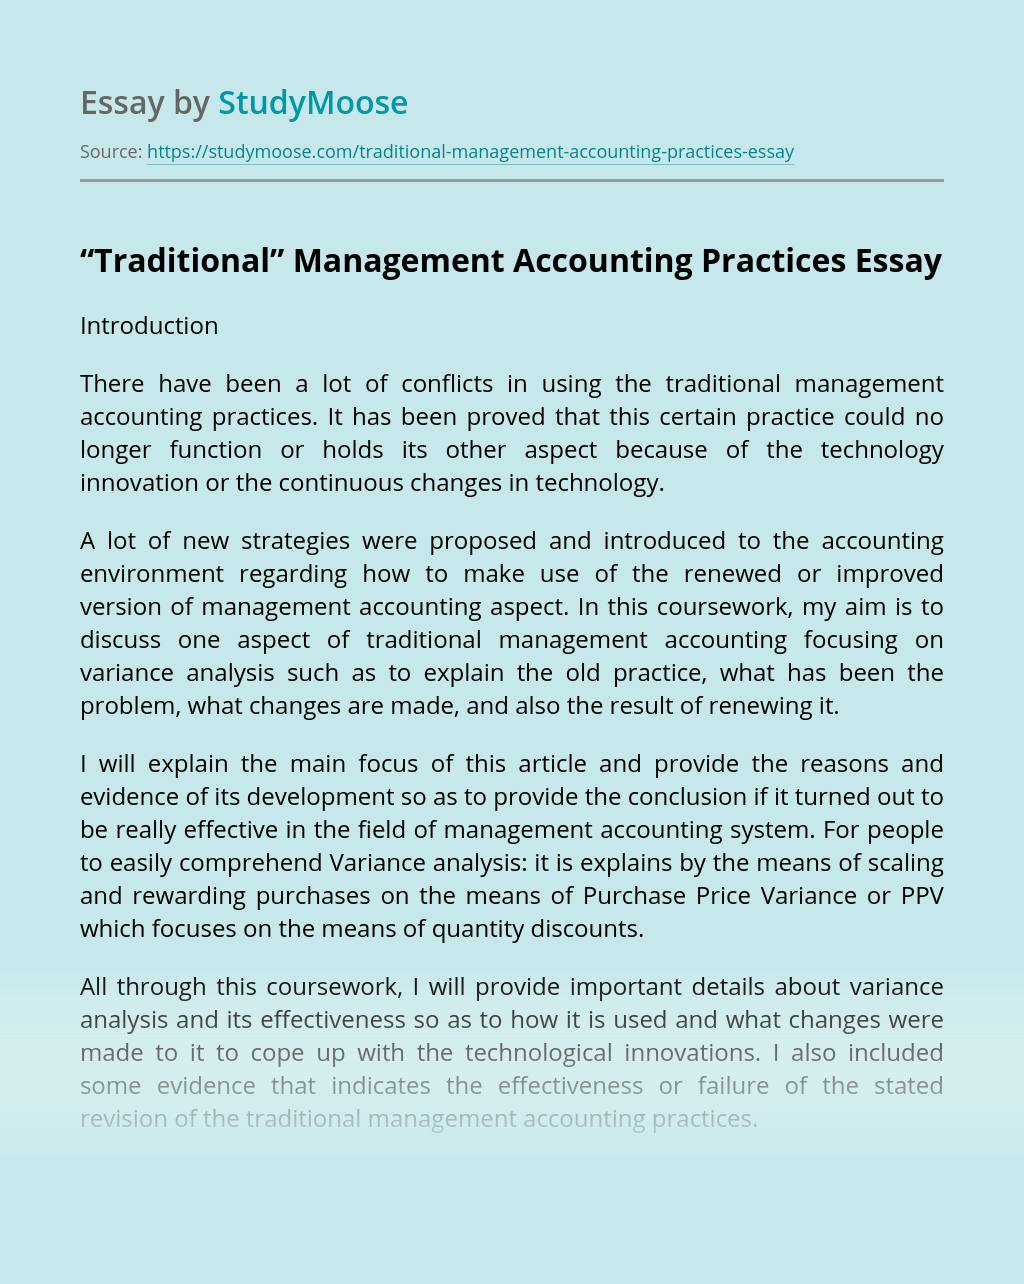 """Traditional"" Management Accounting Practices"